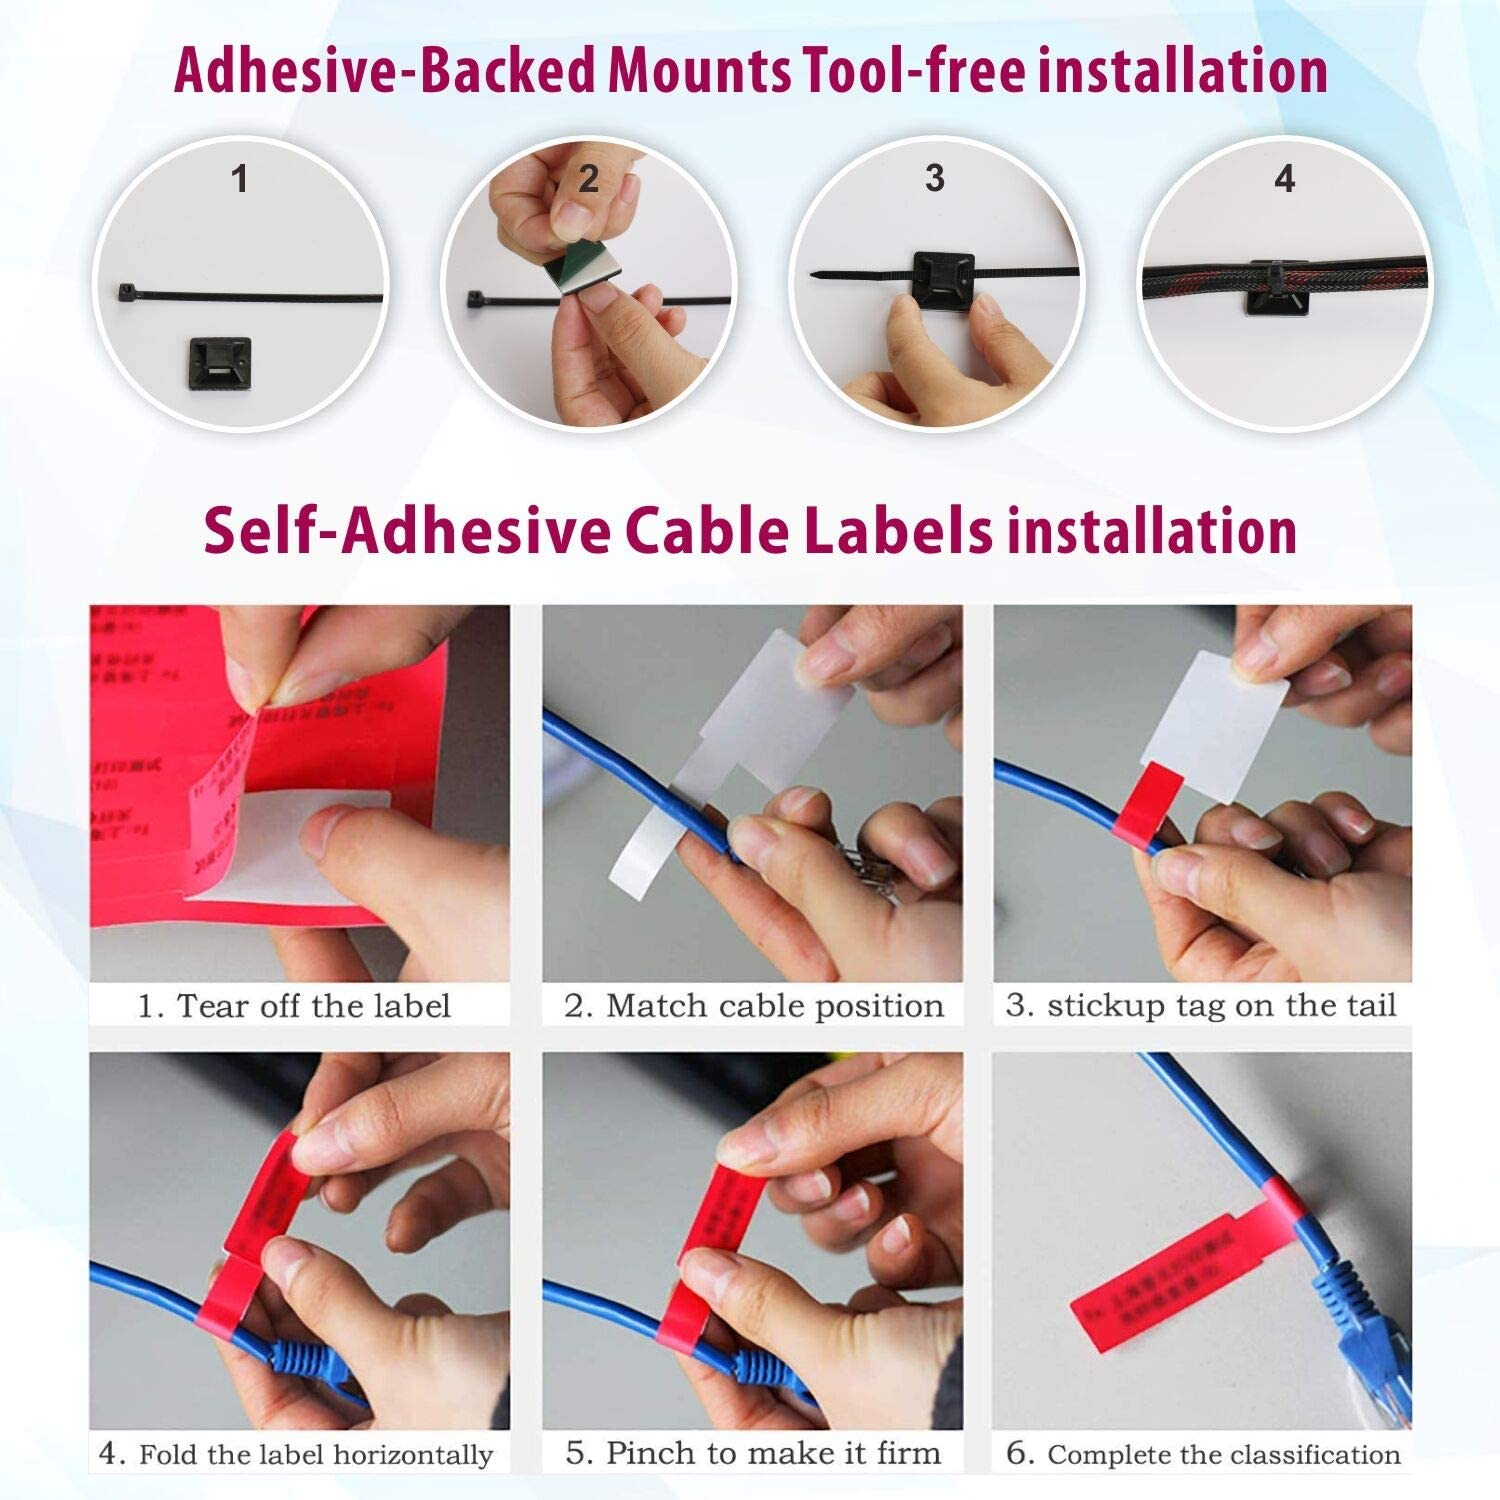 100 Pack Adhesive-Backed Mounts Cable Zip Tie Base Holders with 100Pcs Multi-Purpose Cable Tie 150Pcs Cable Labels 200Pcs Screw for Cable Management Long-Term Secure